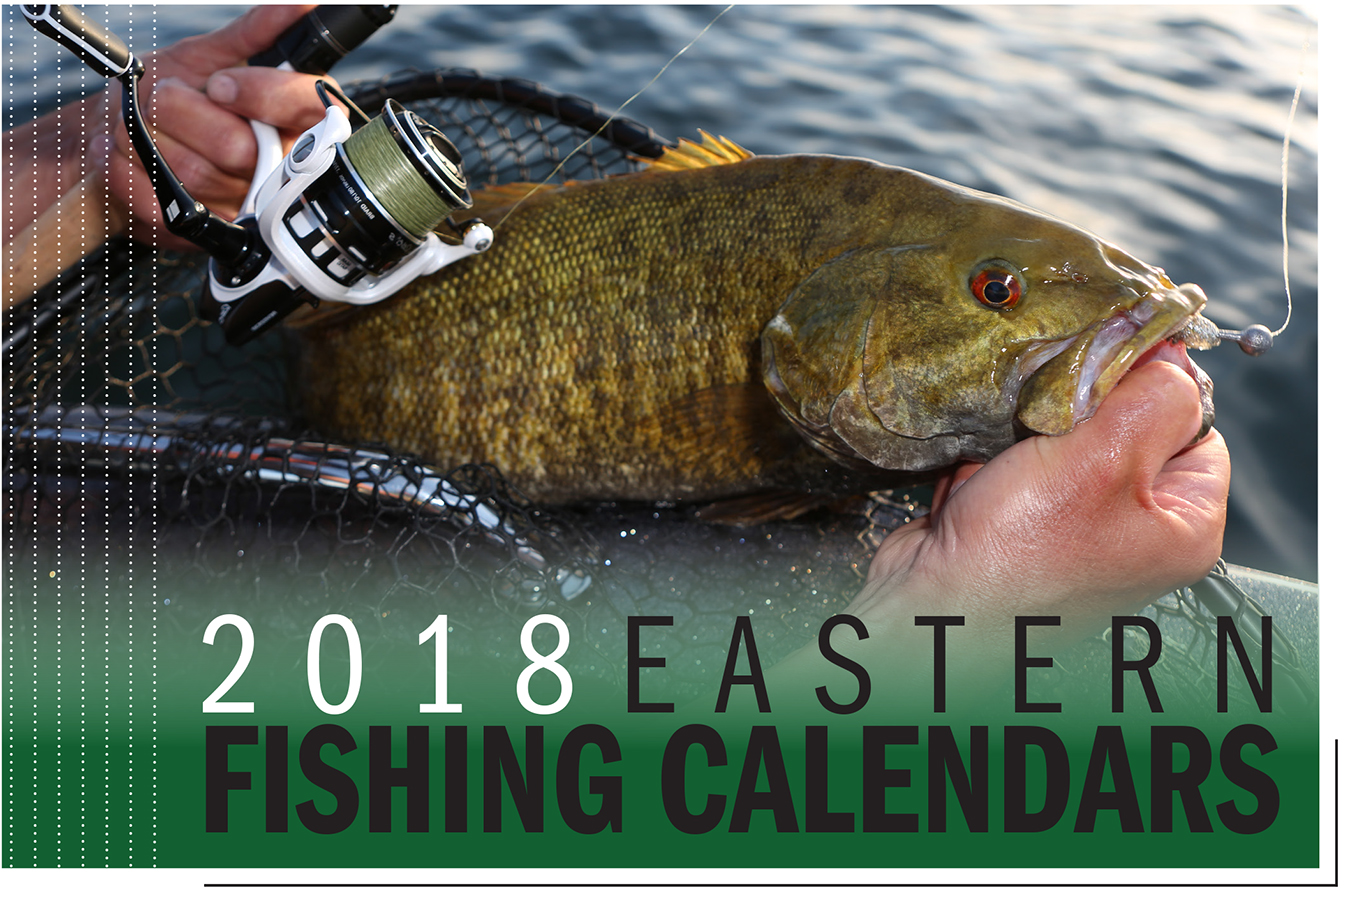 2018 Eastern Fishing Calendars